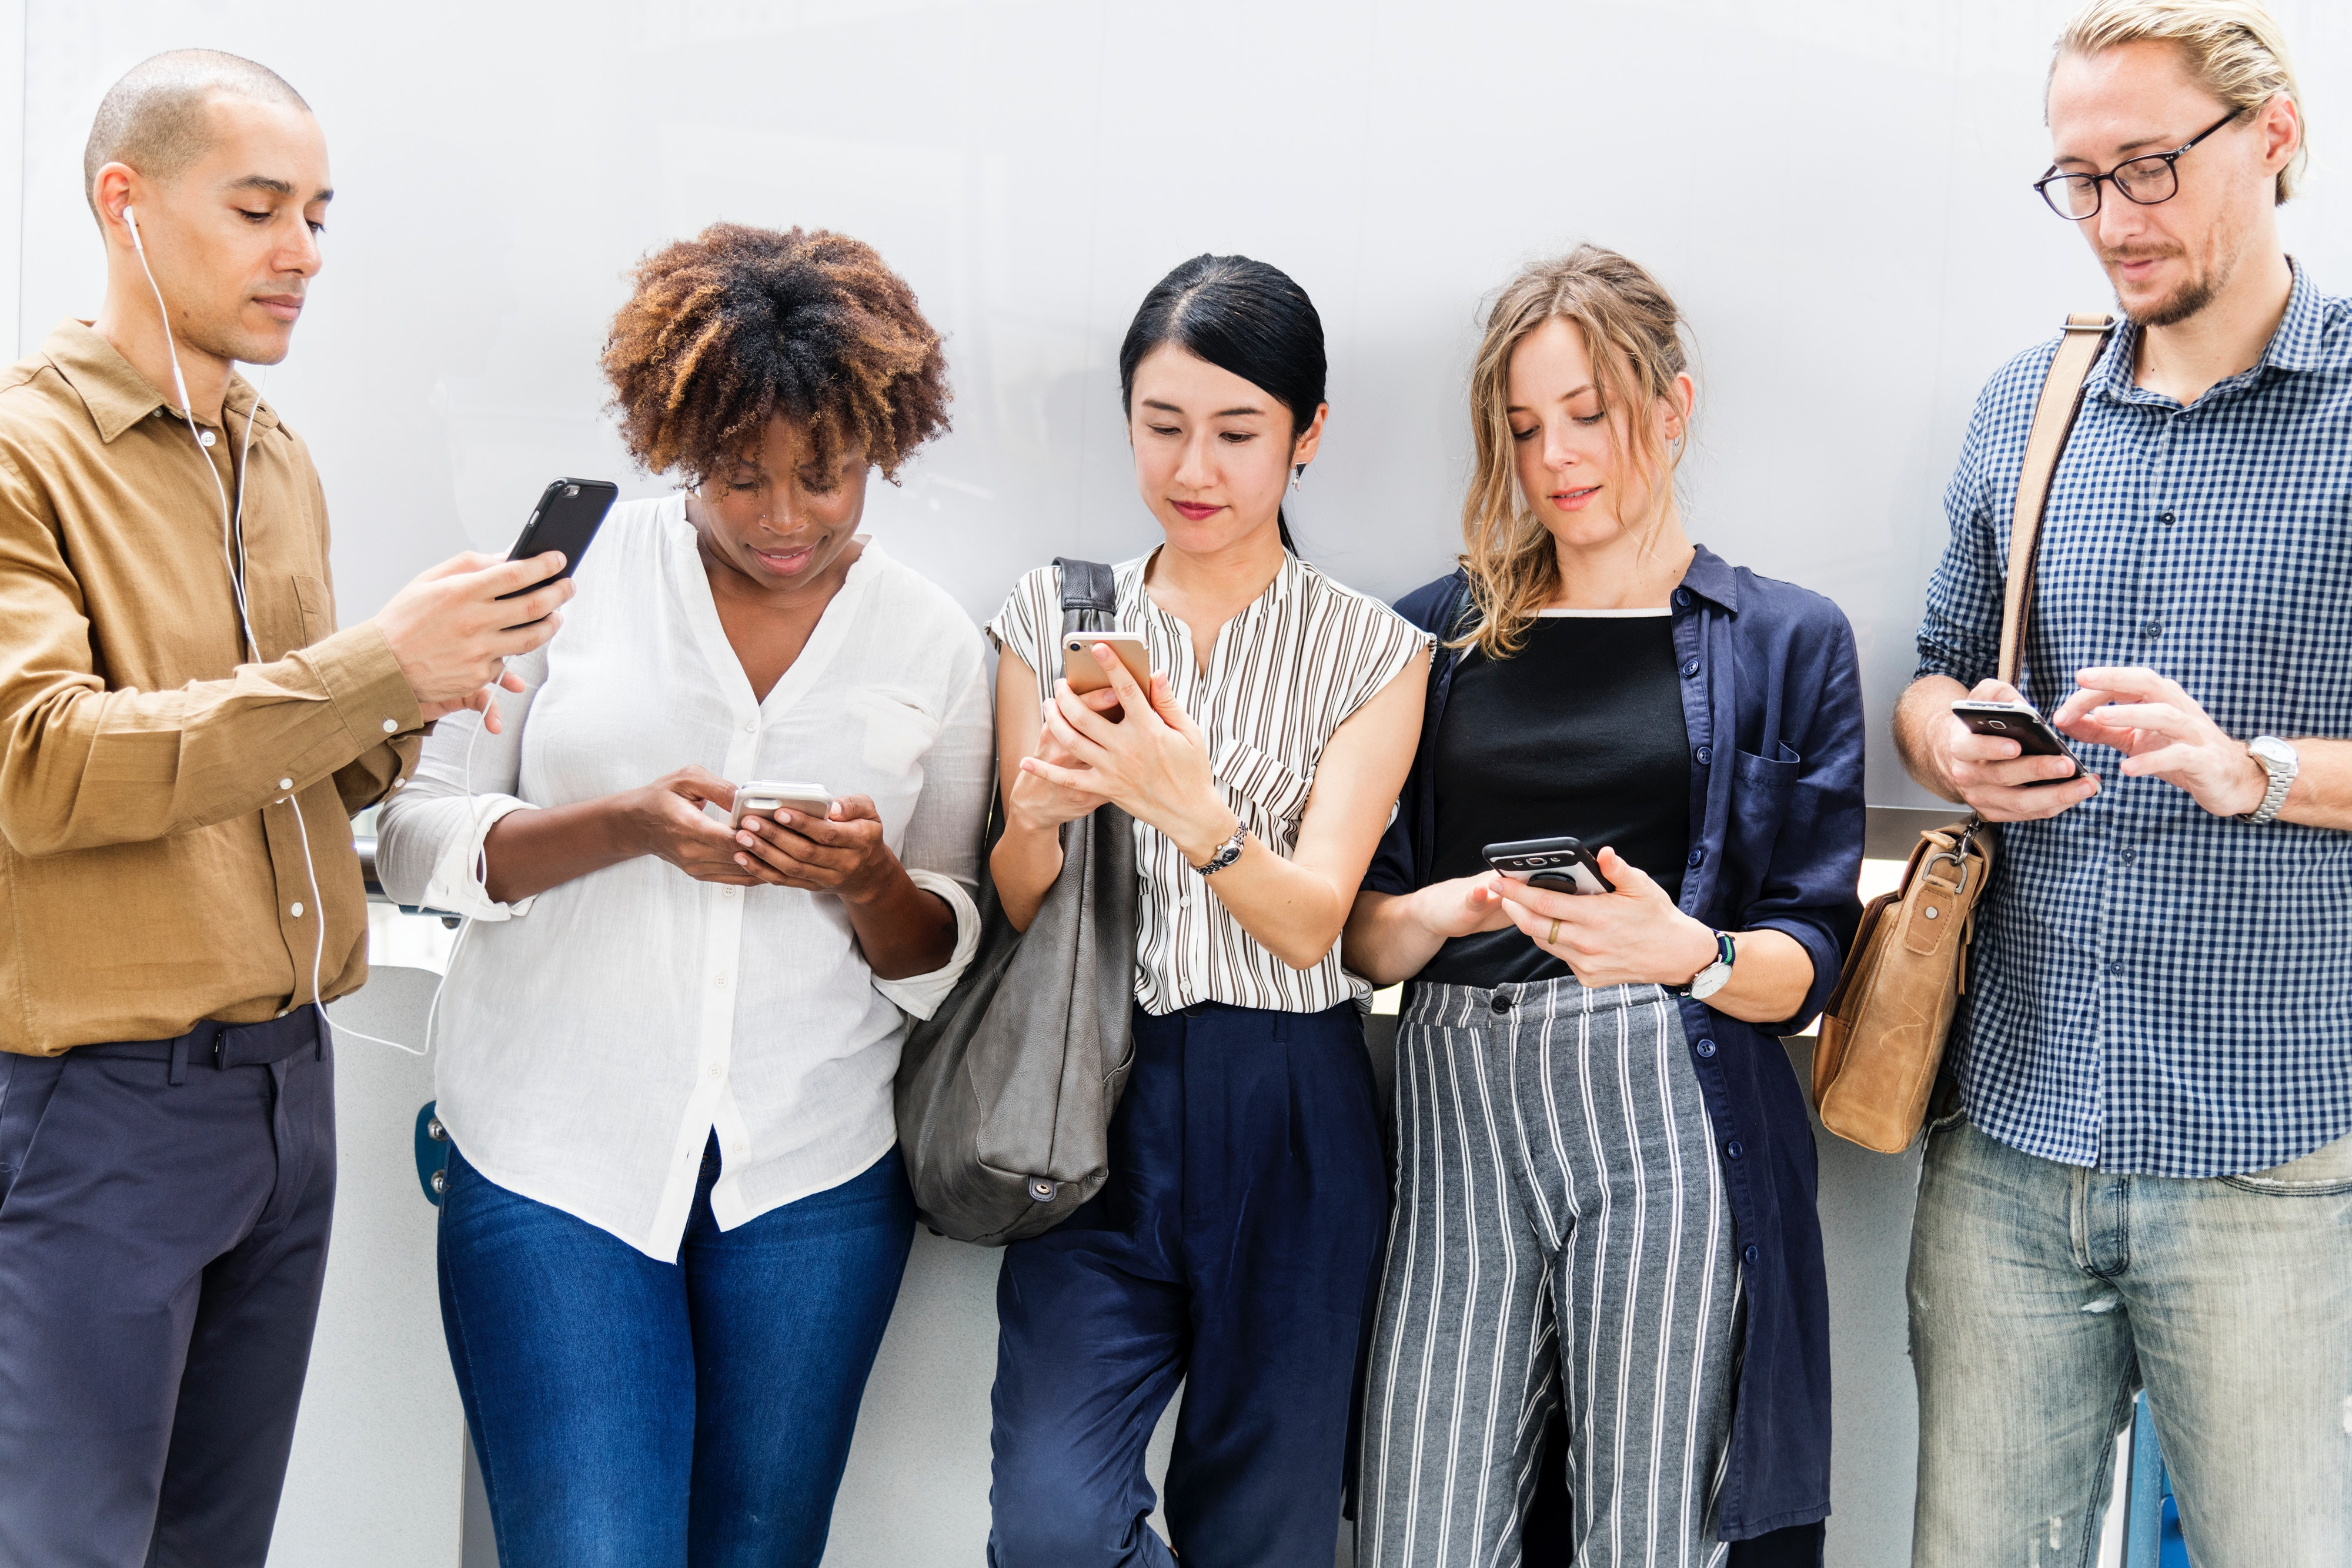 5 Mobile Advertising Trends Changing the Industry in 2019